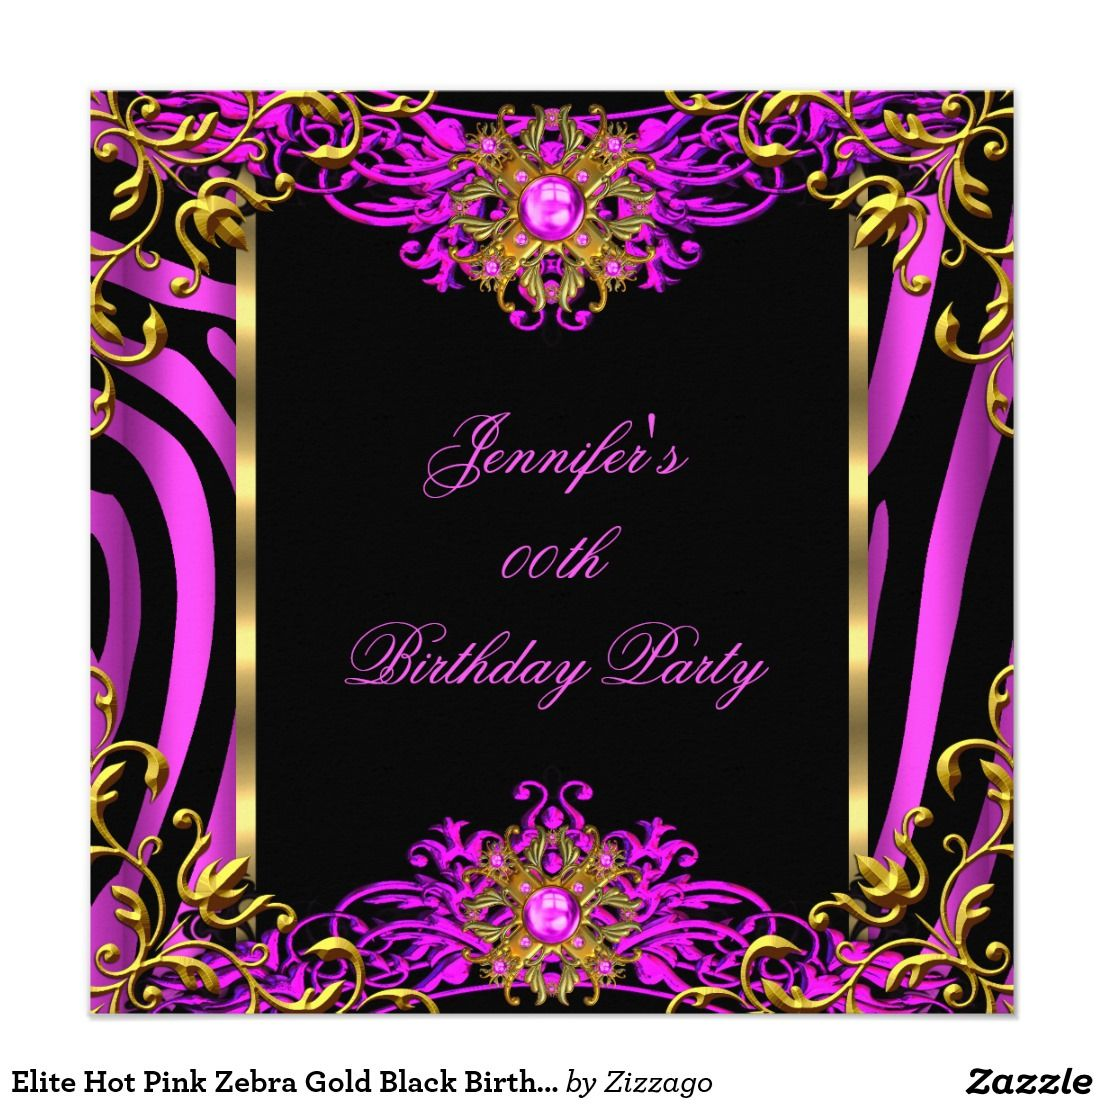 Elite Hot Pink Zebra Gold Black Birthday Party Invitation